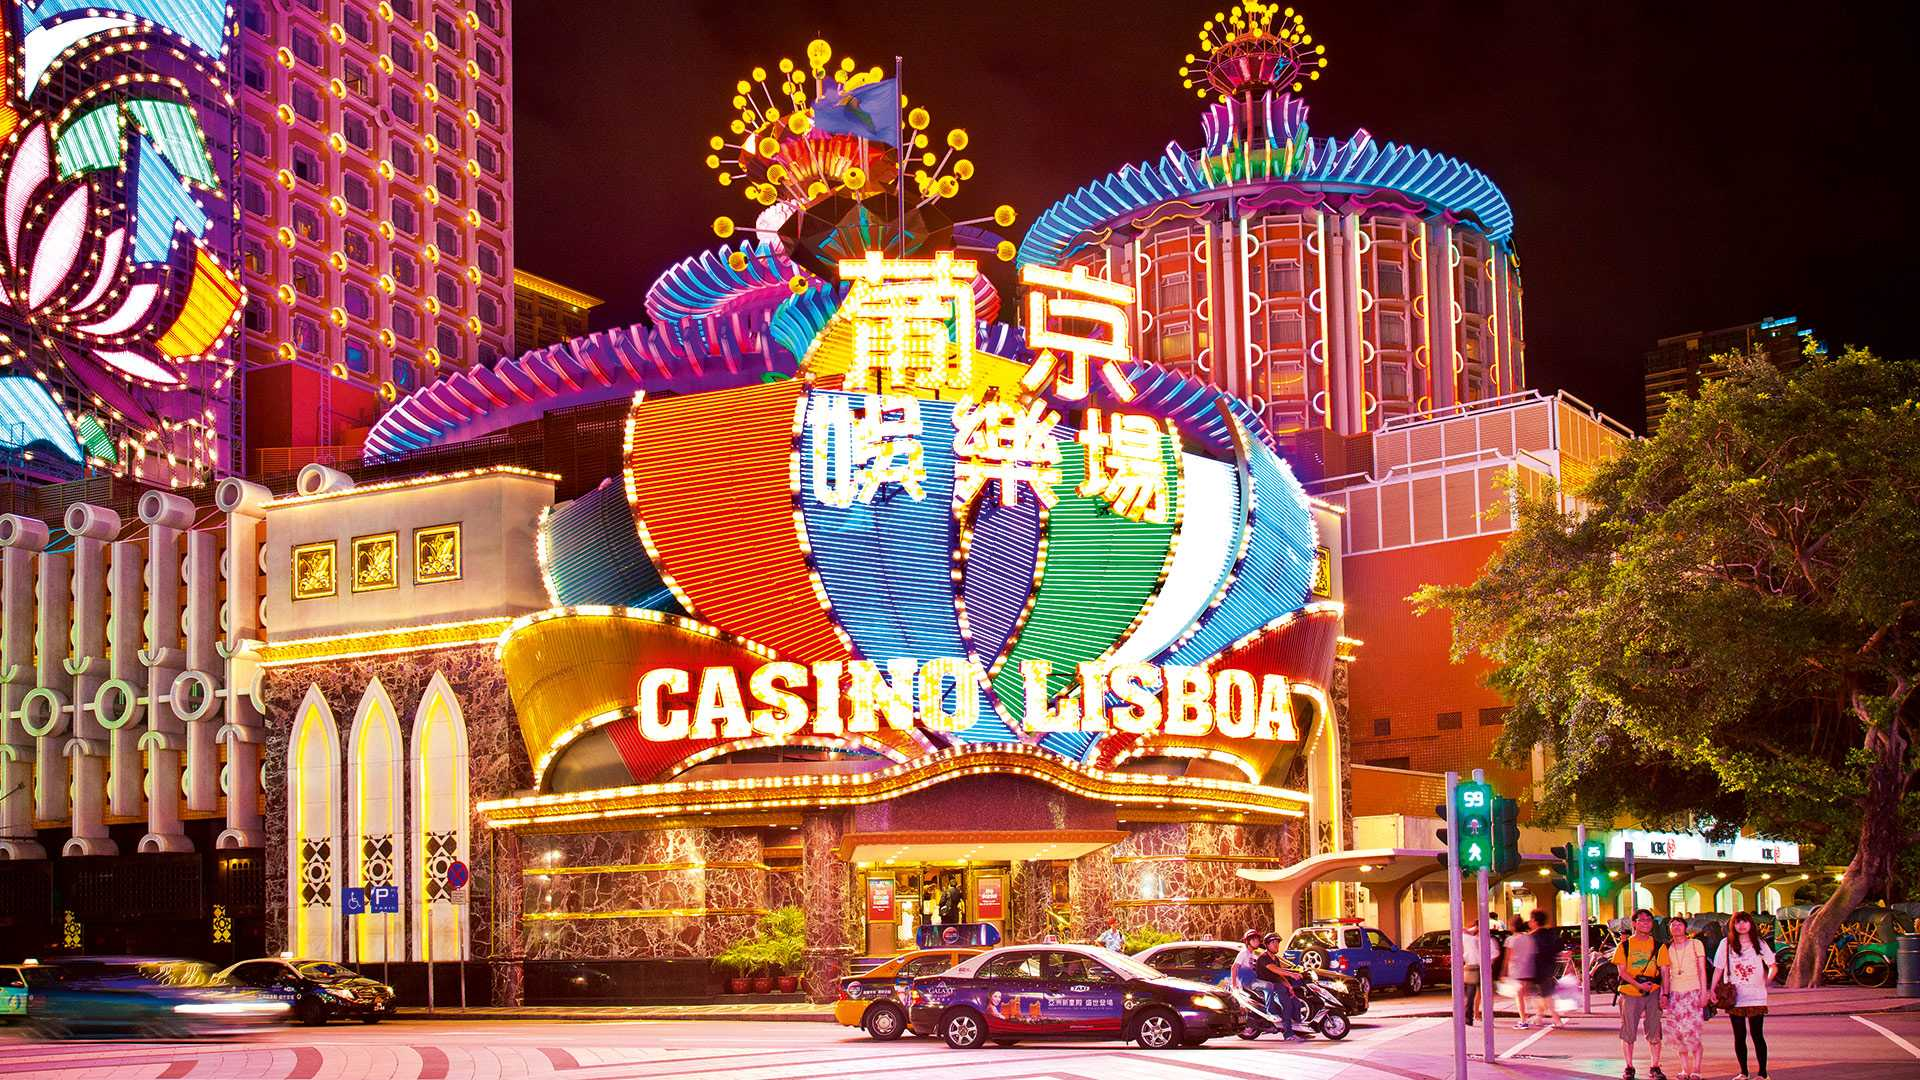 Online Casinos Are One Of The Most Played Recreational Activities For Many People